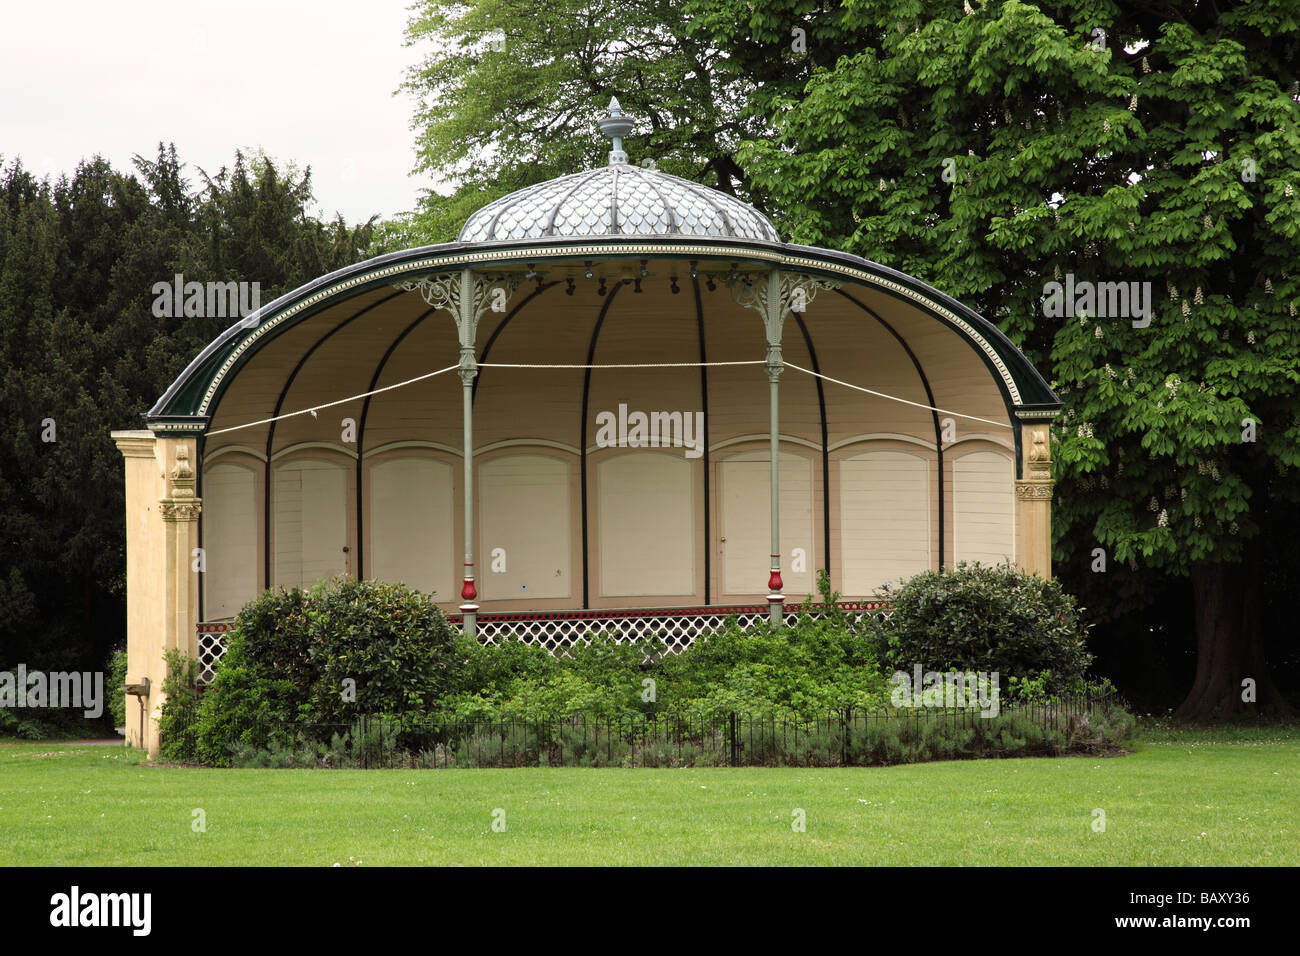 Royal Victoria Park Bandstand, Bath, England - Stock Image